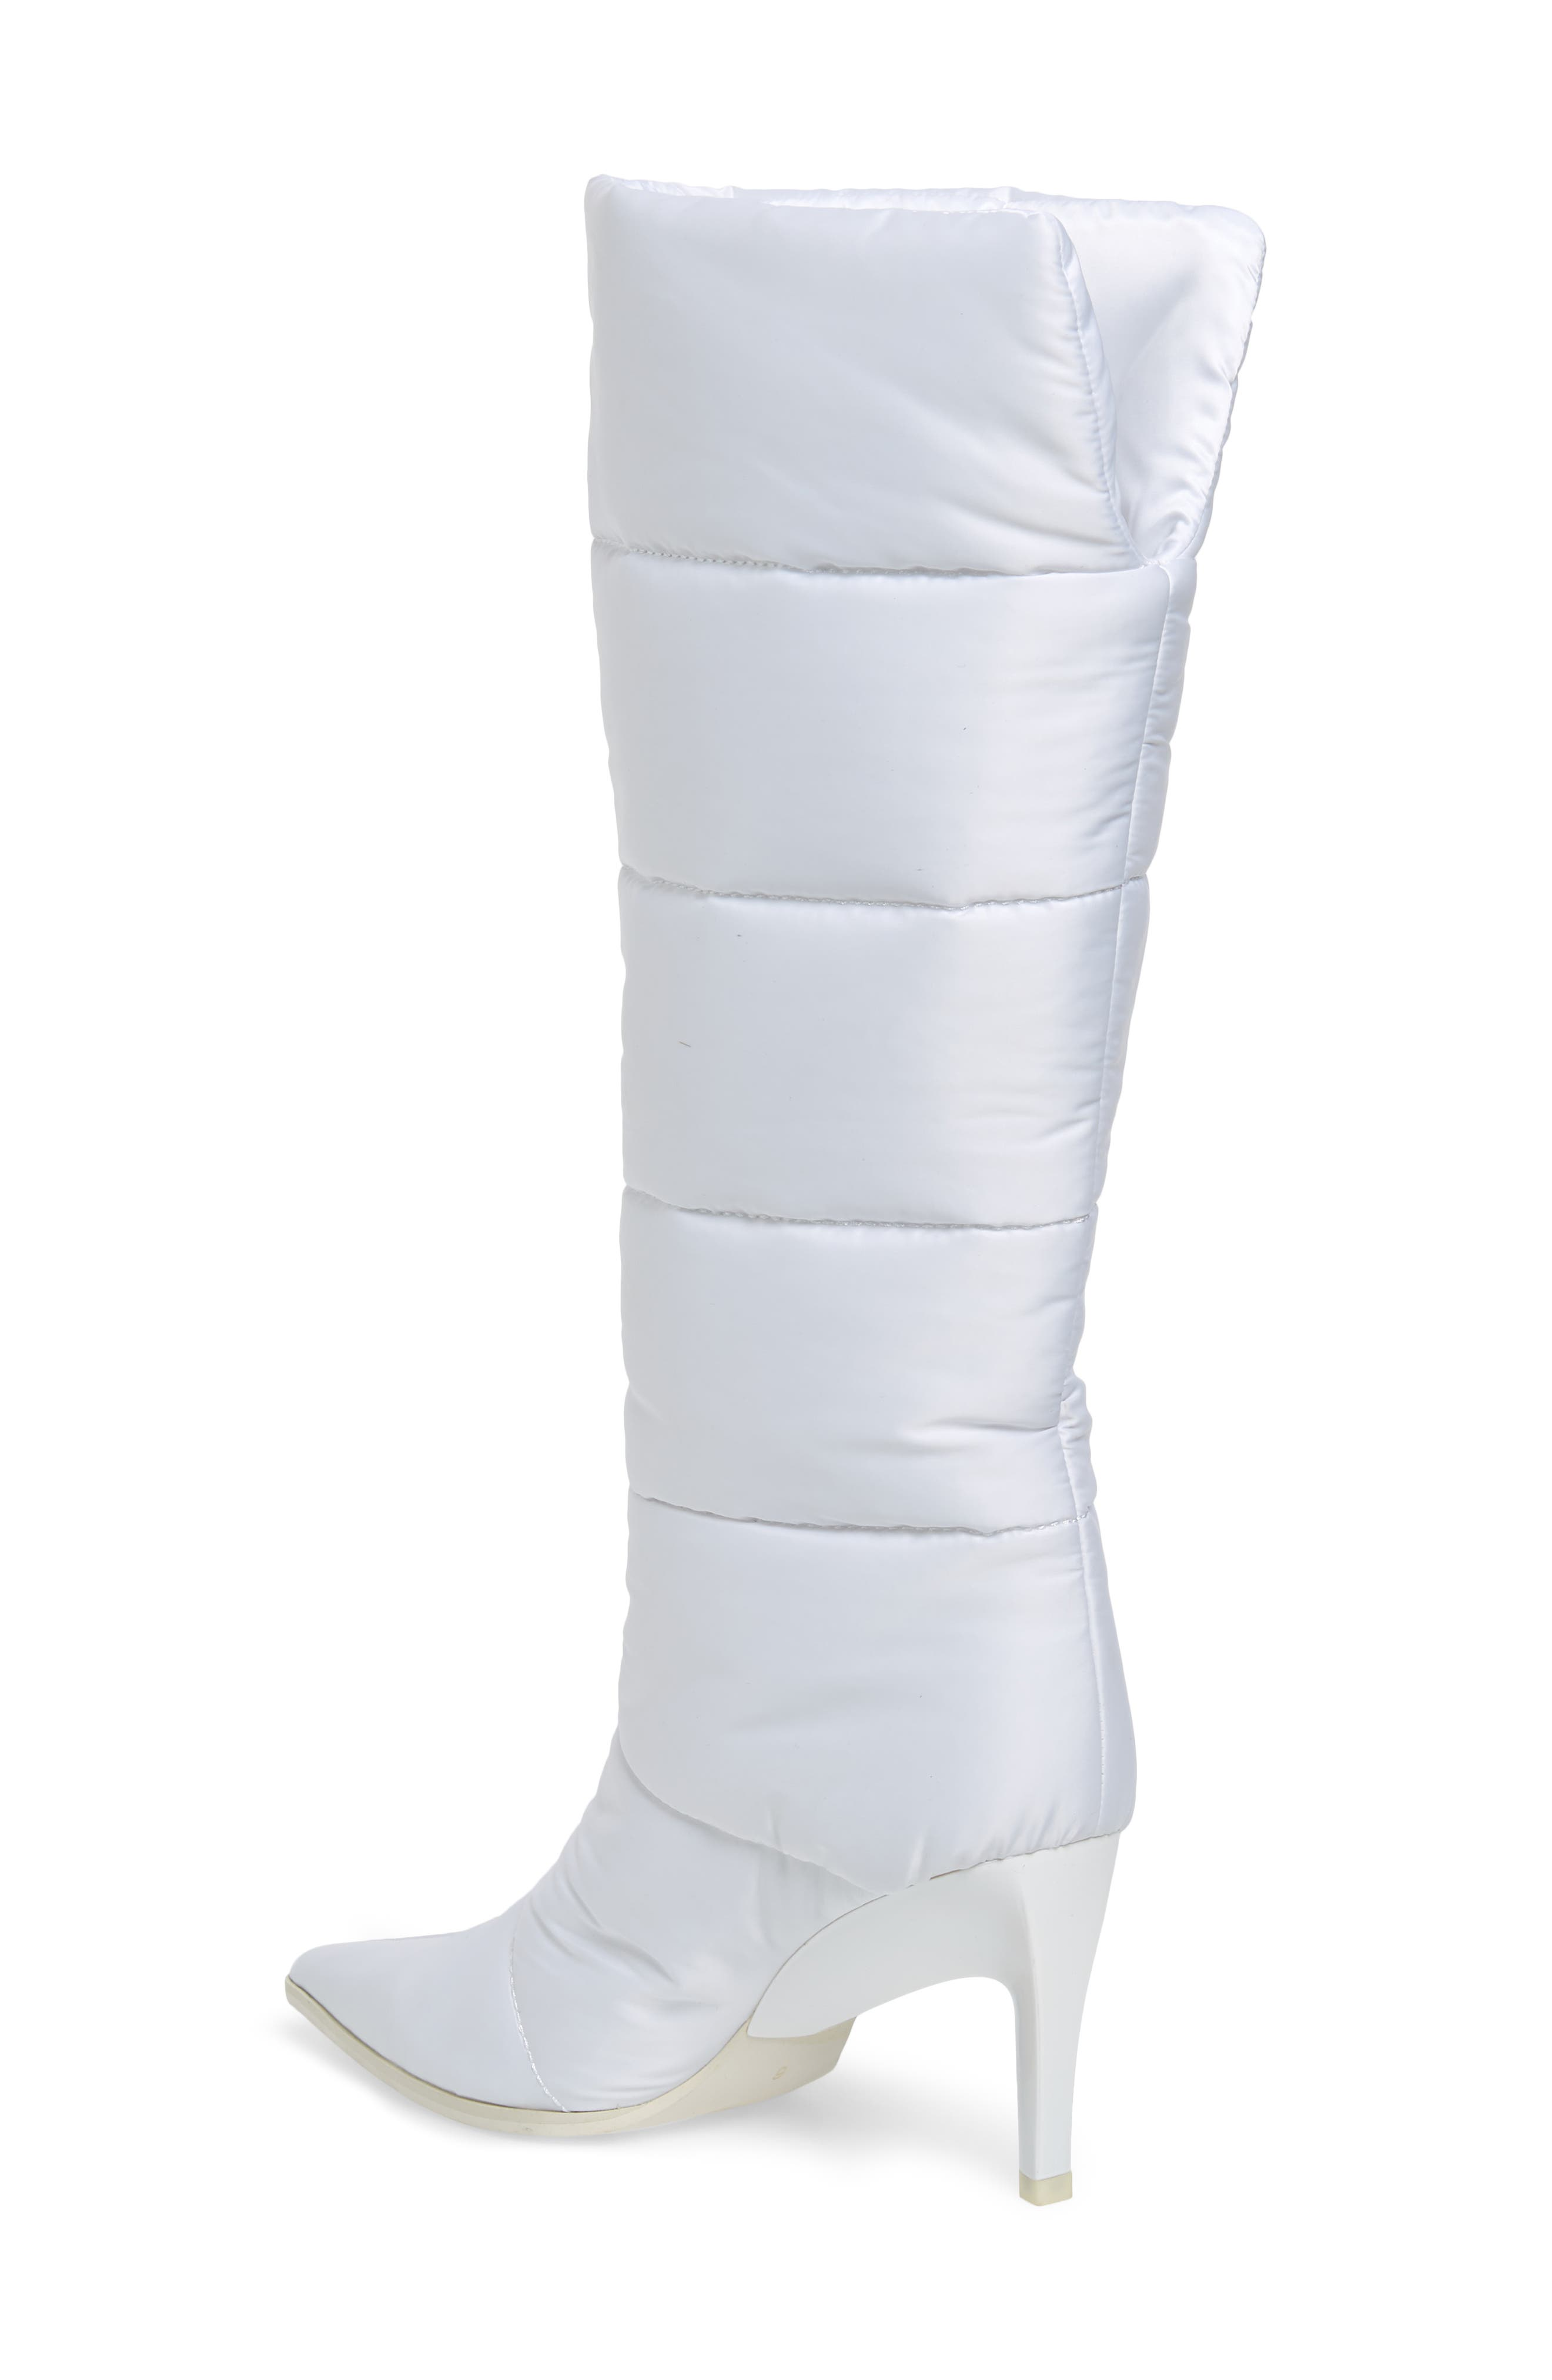 Apris Knee High Puffer Boot,                             Alternate thumbnail 2, color,                             WHITE FABRIC